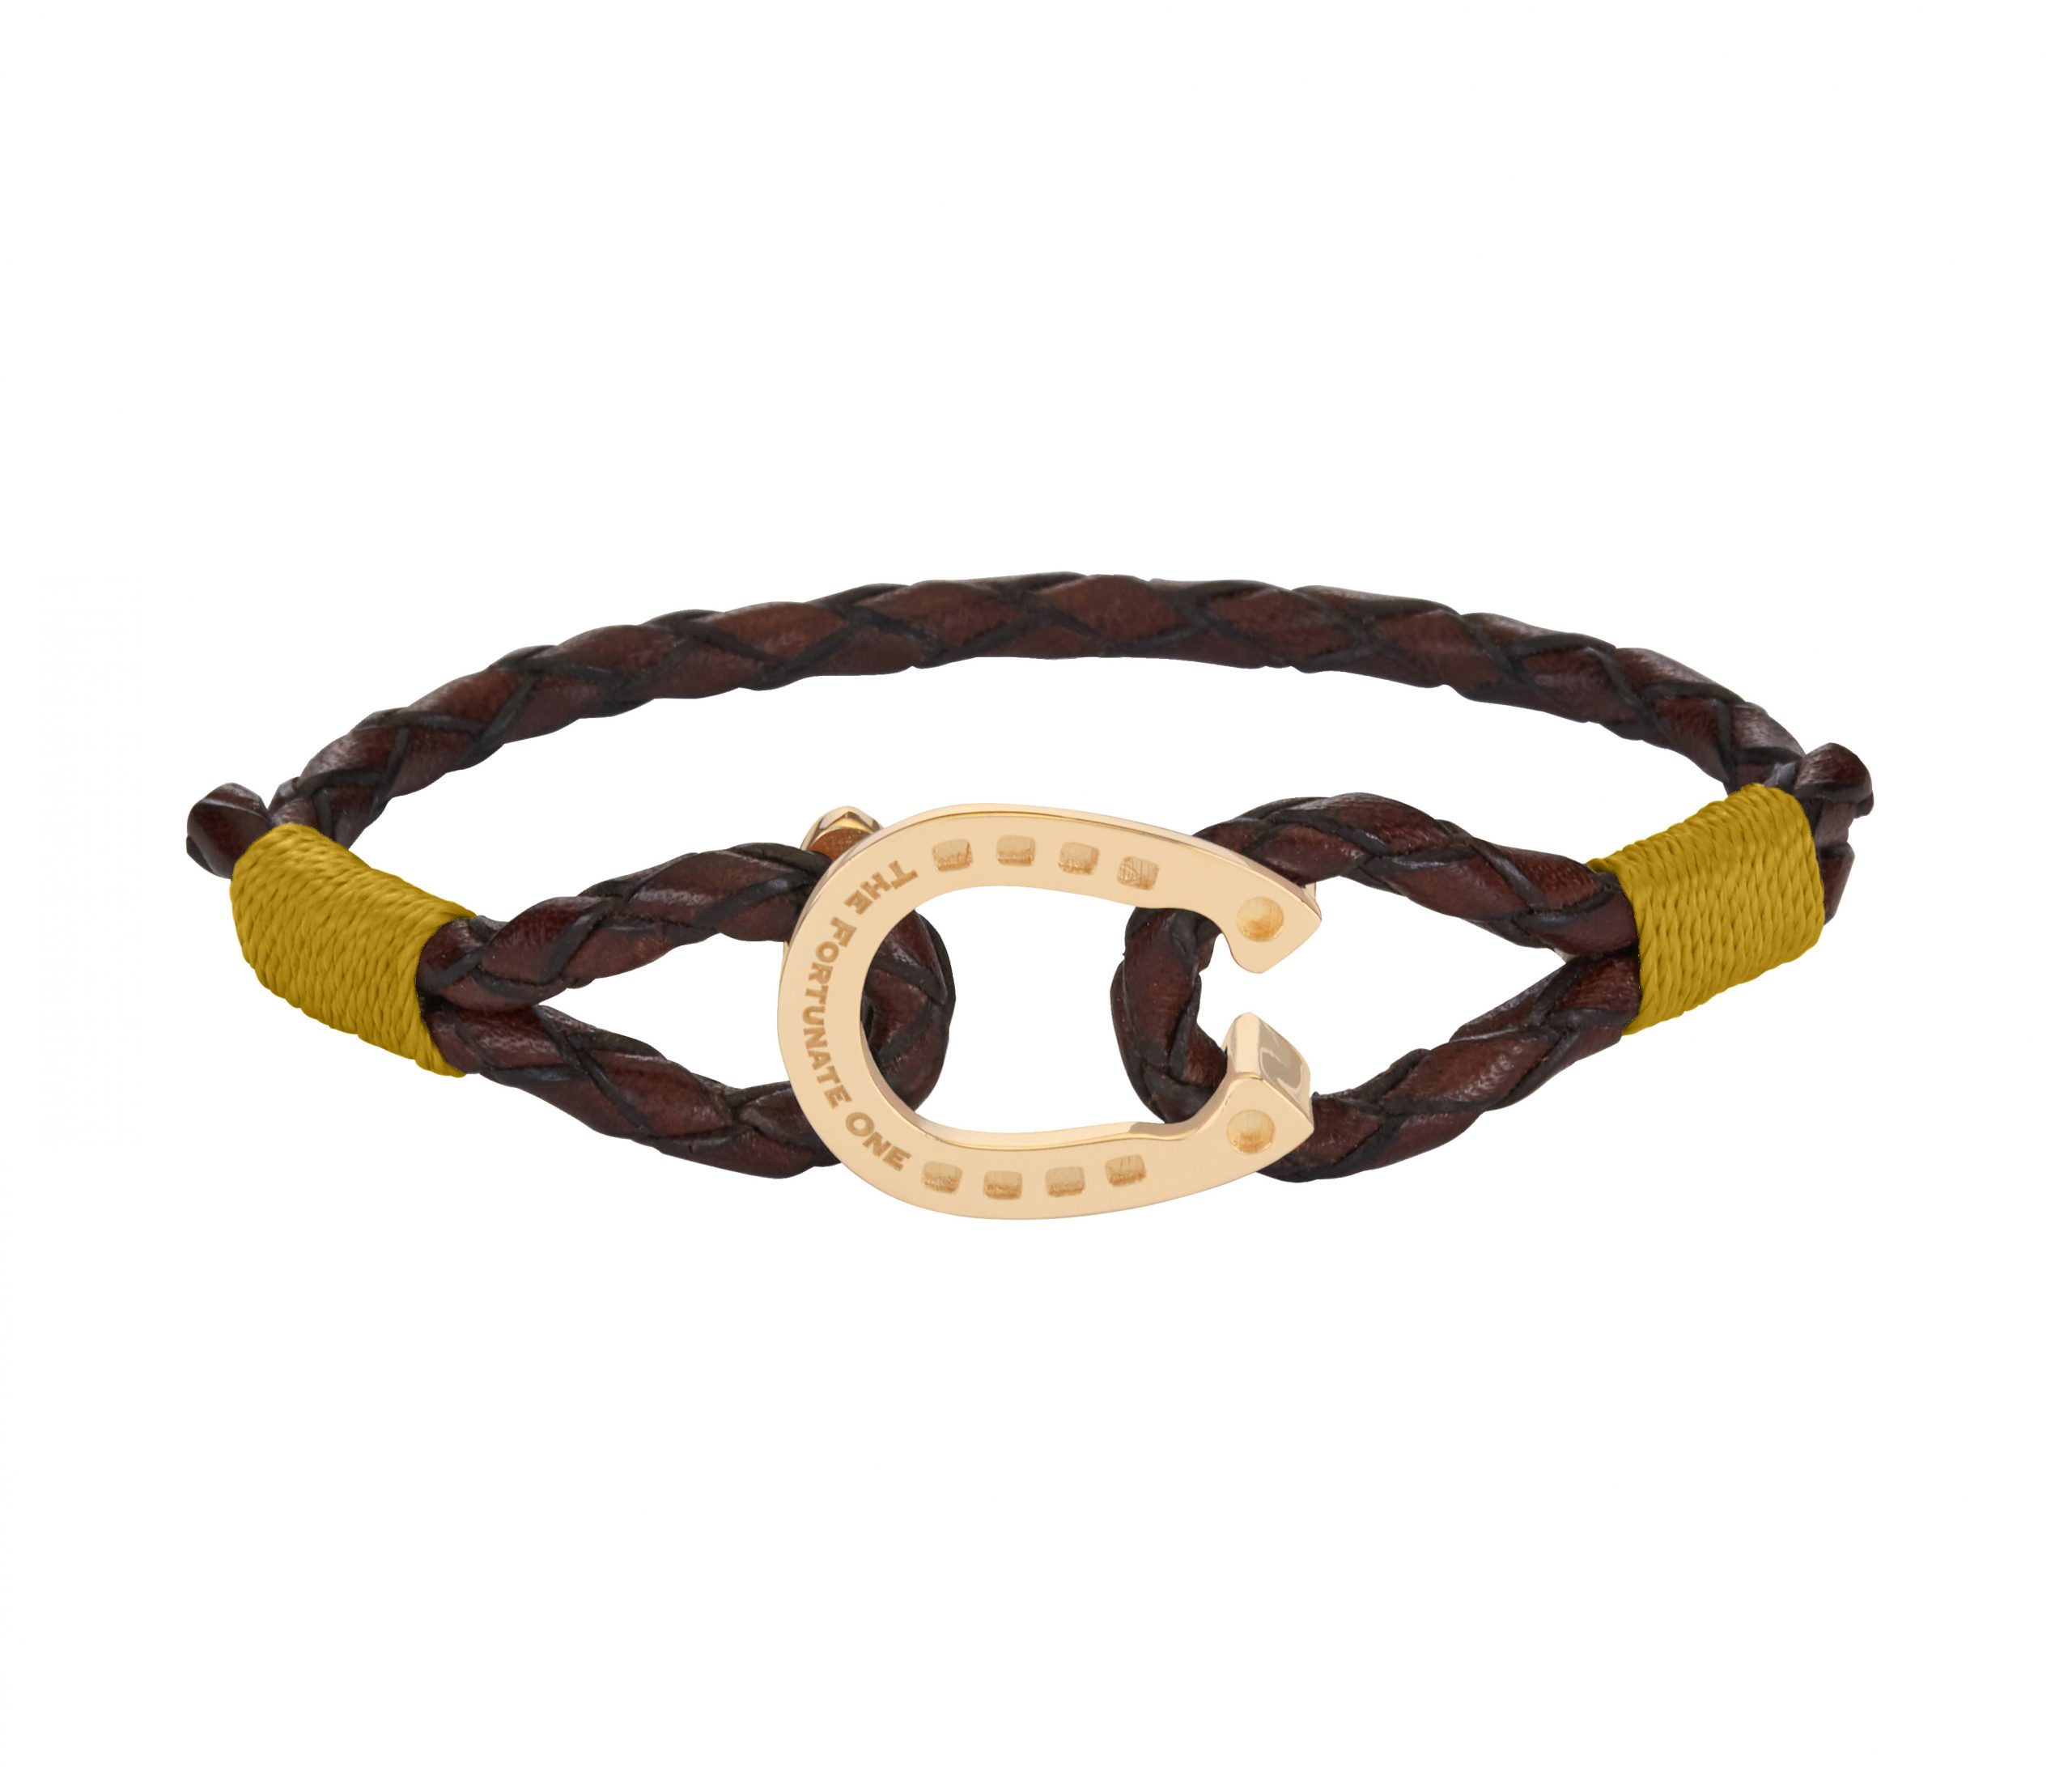 Horseshoe-jewellery-gold-Clydesdale-brown-yellow-the-fortunate-one-front